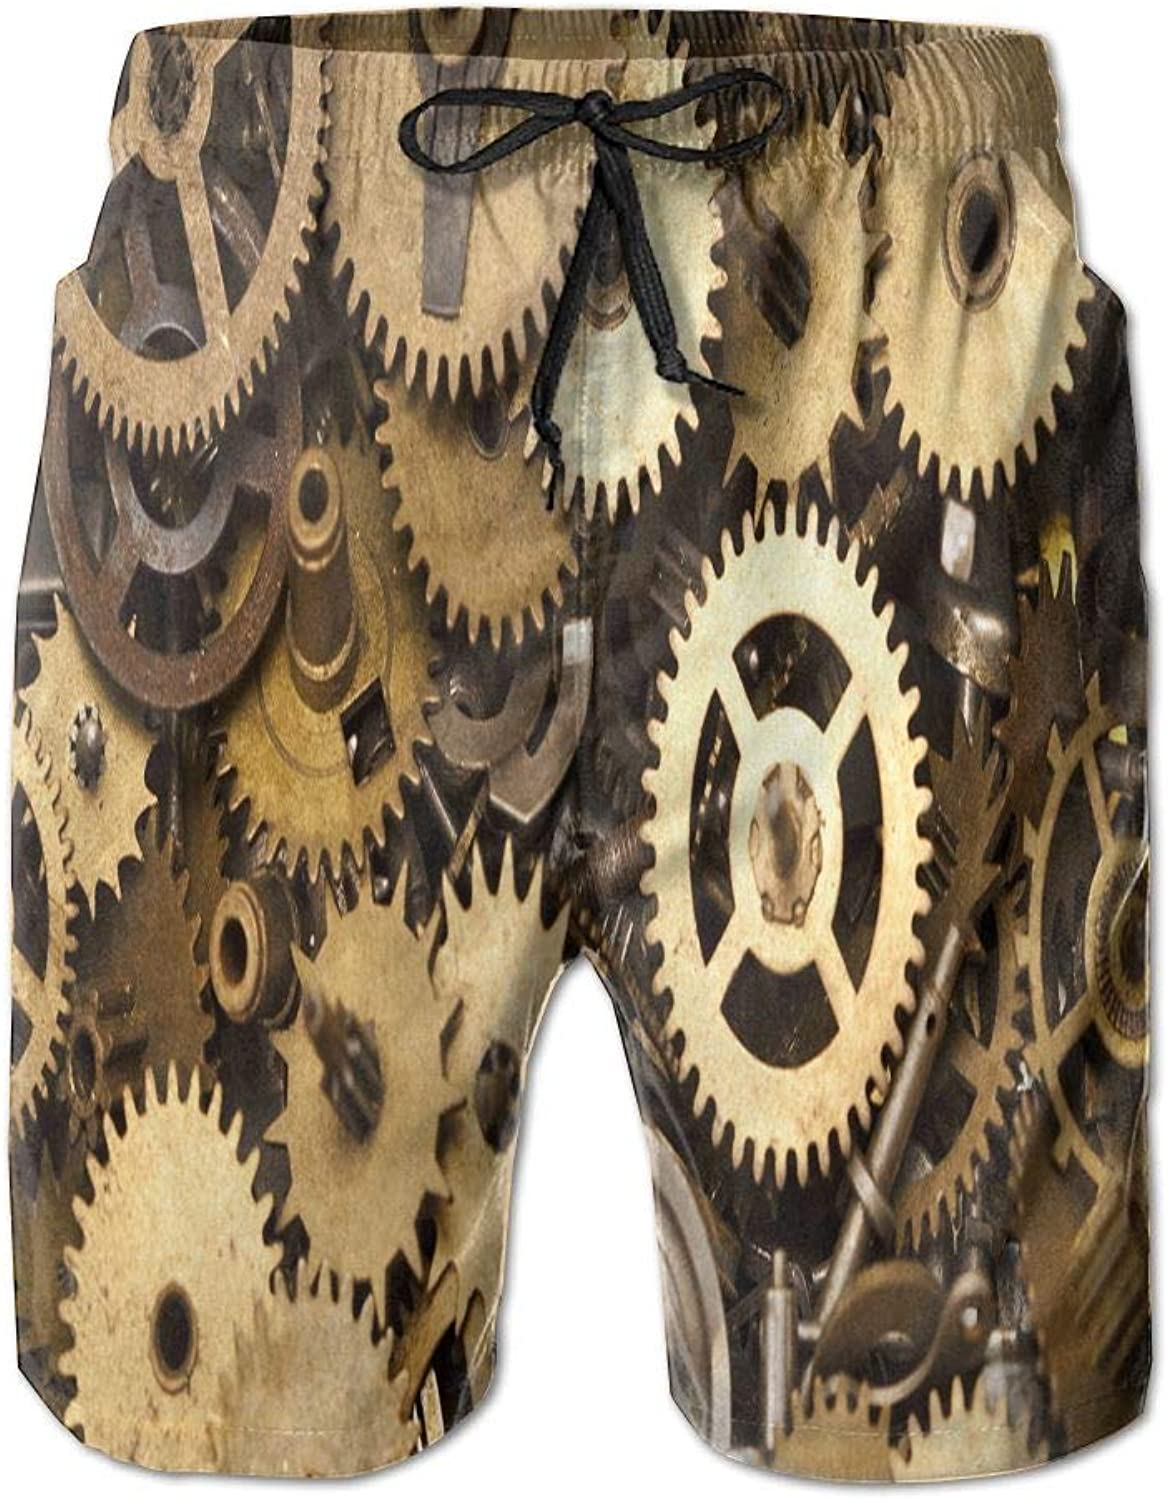 UAJAR Steampunk Gears Mens 3D Printed Board Shorts Cool Beach Swim Shorts Swim Trunk